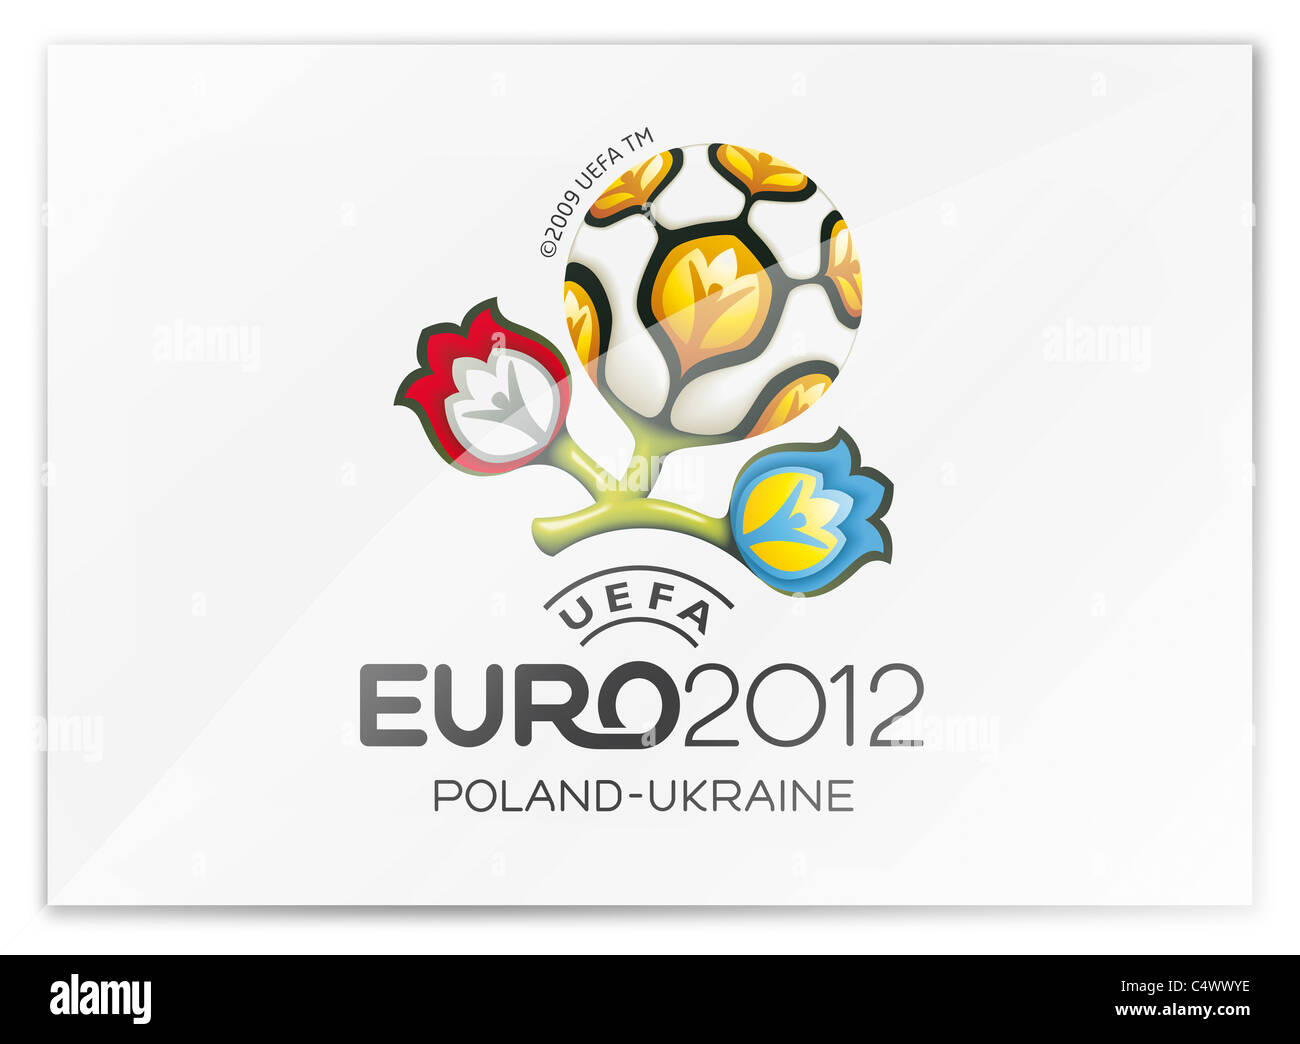 euro 2012 logo flag symbol football stock photo alamy https www alamy com stock photo euro 2012 logo flag symbol football 37448530 html